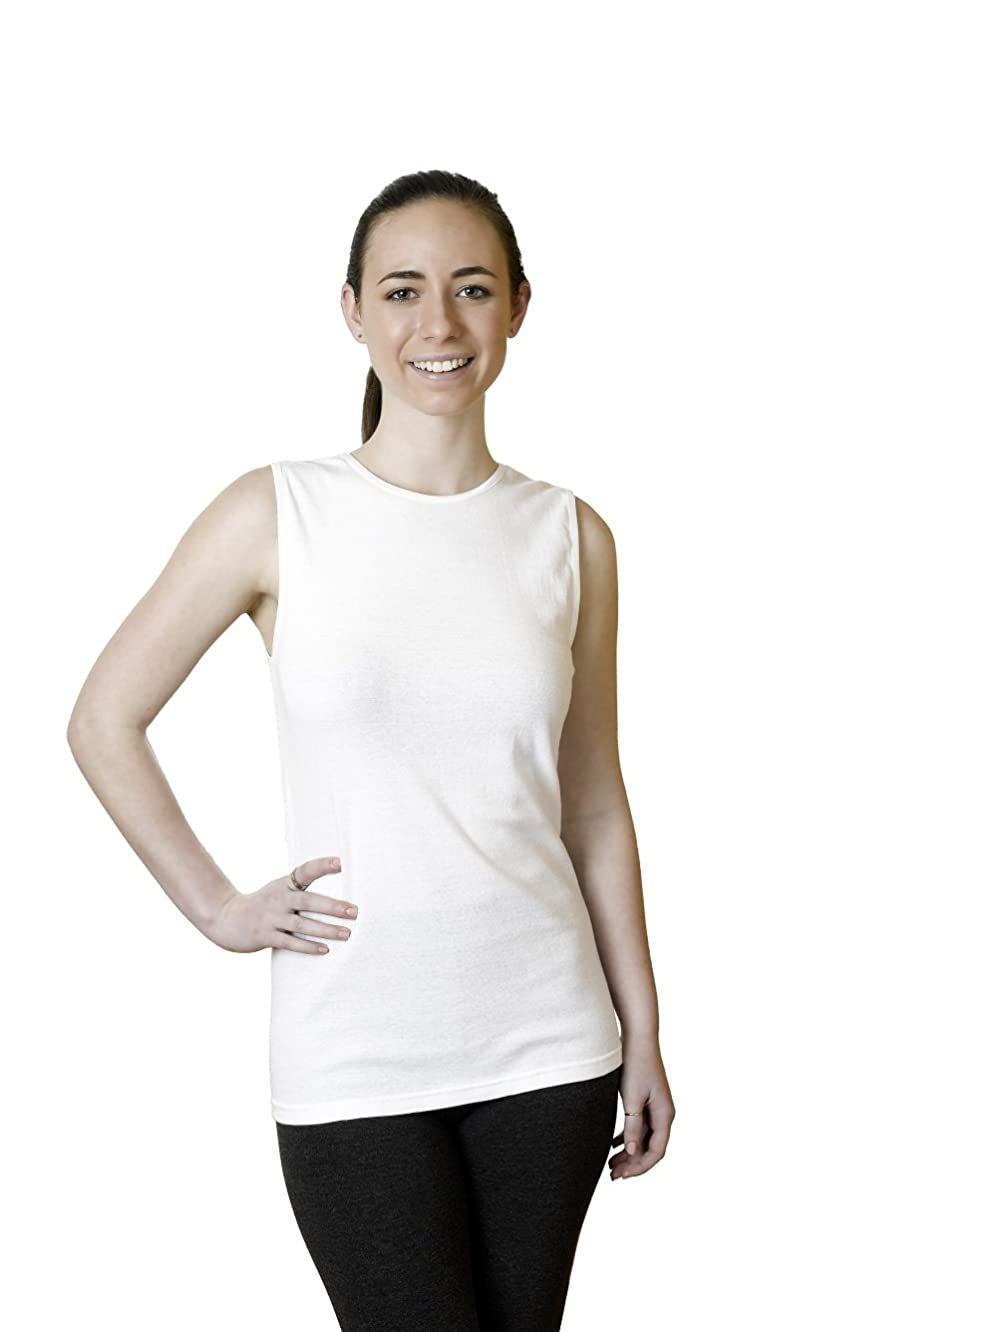 Rosette Women's Sleeveless Undershirt - Cotton – High Neck, Full shoulder design